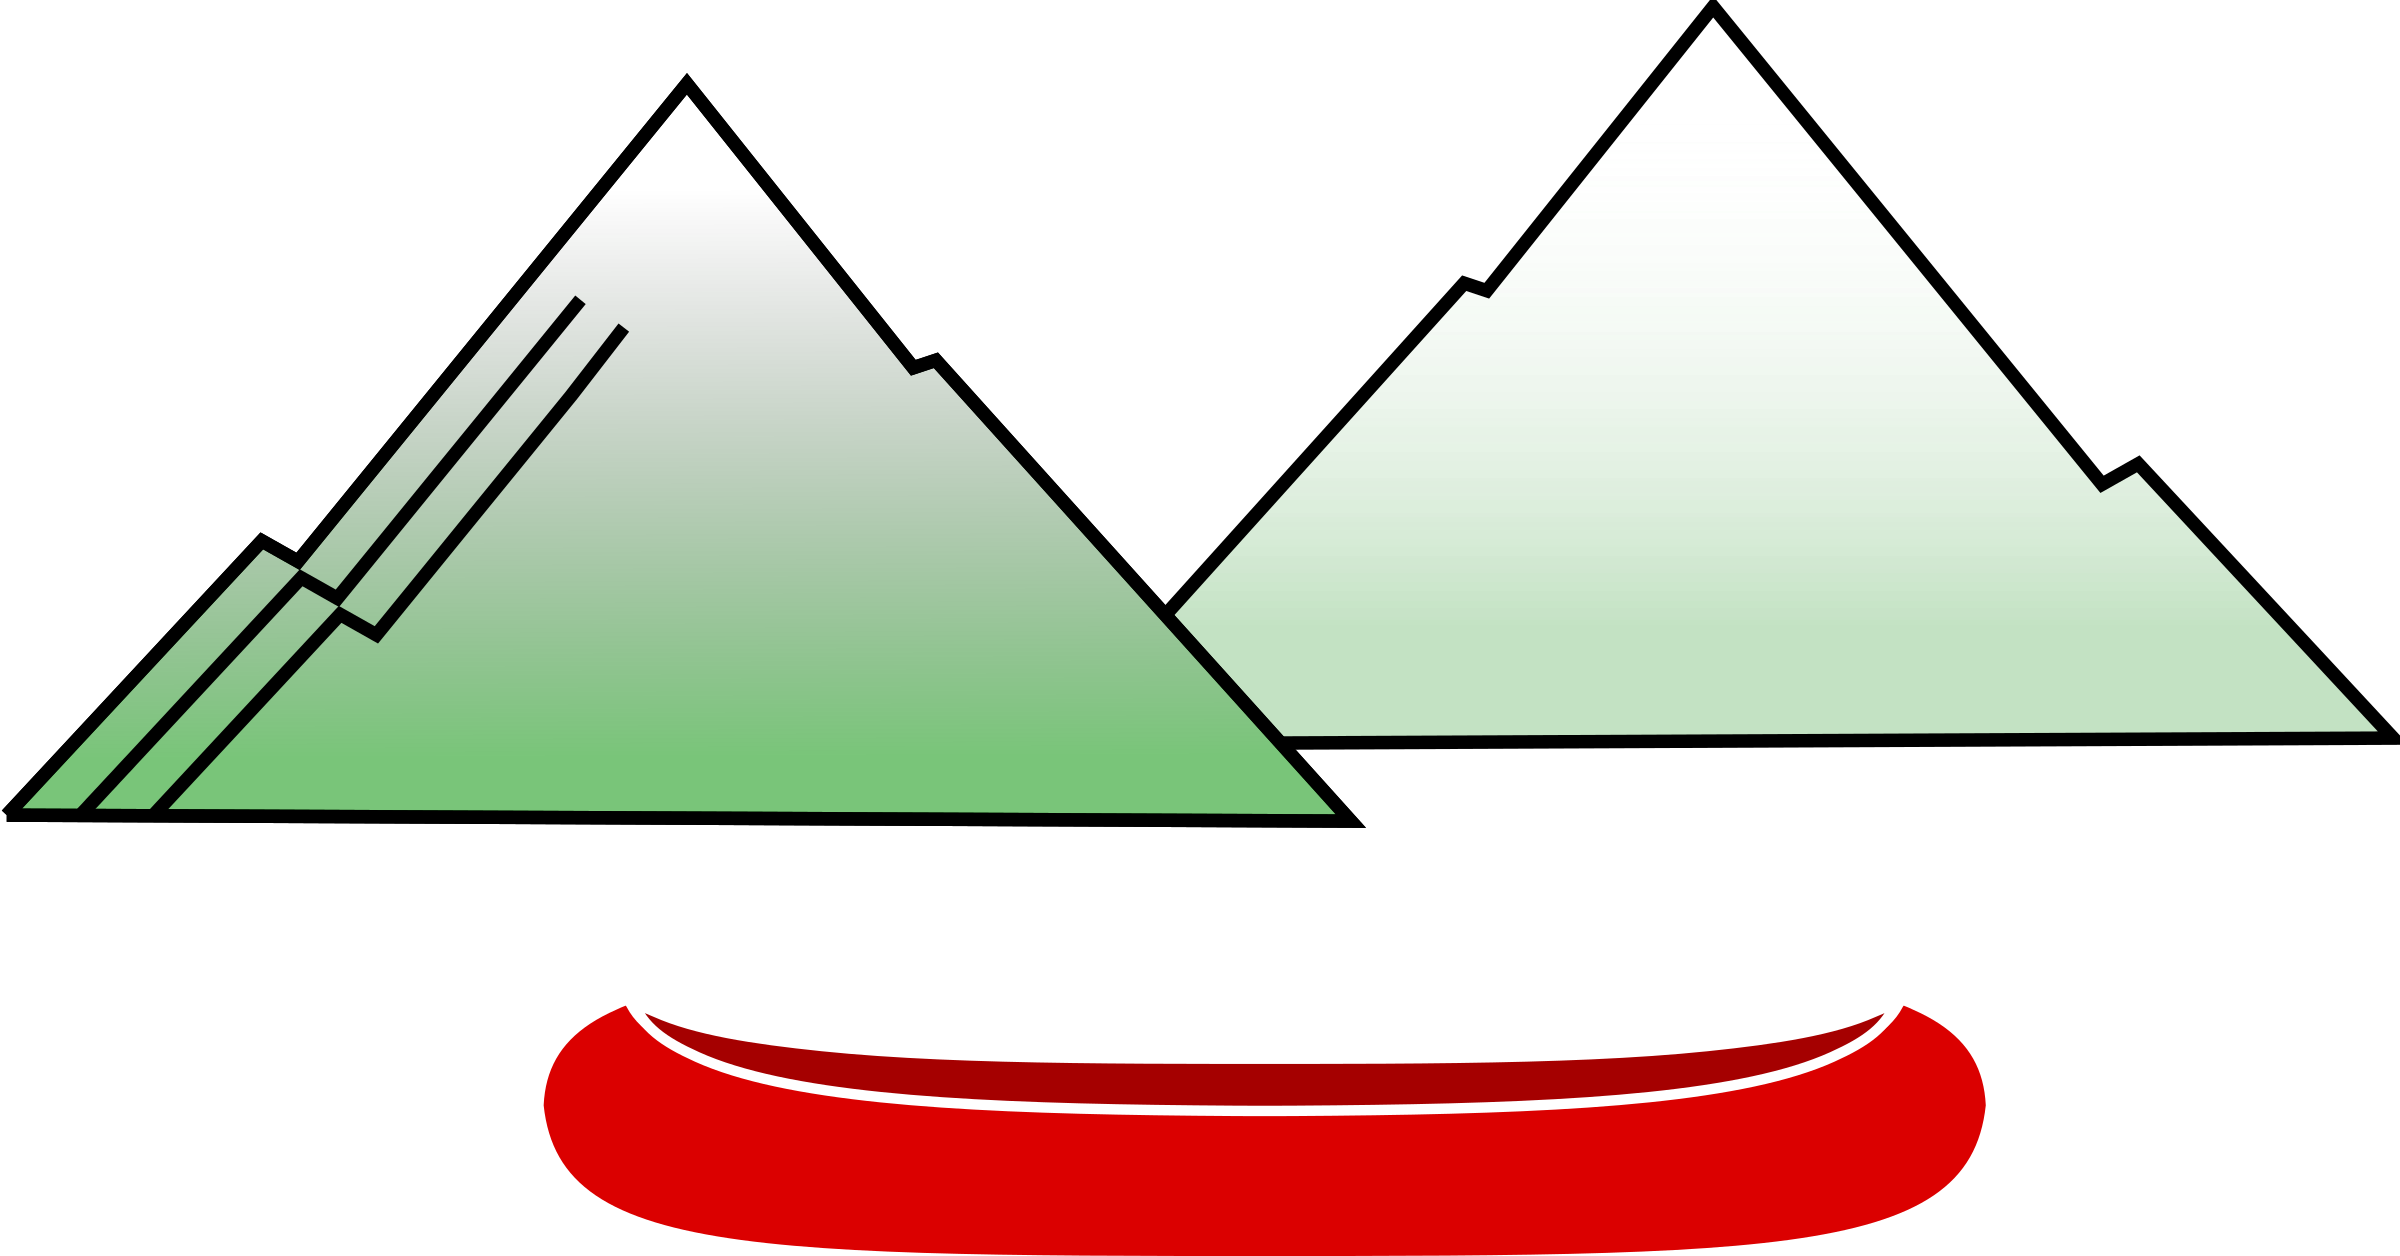 Canoe with big image. Clipart mountains vector